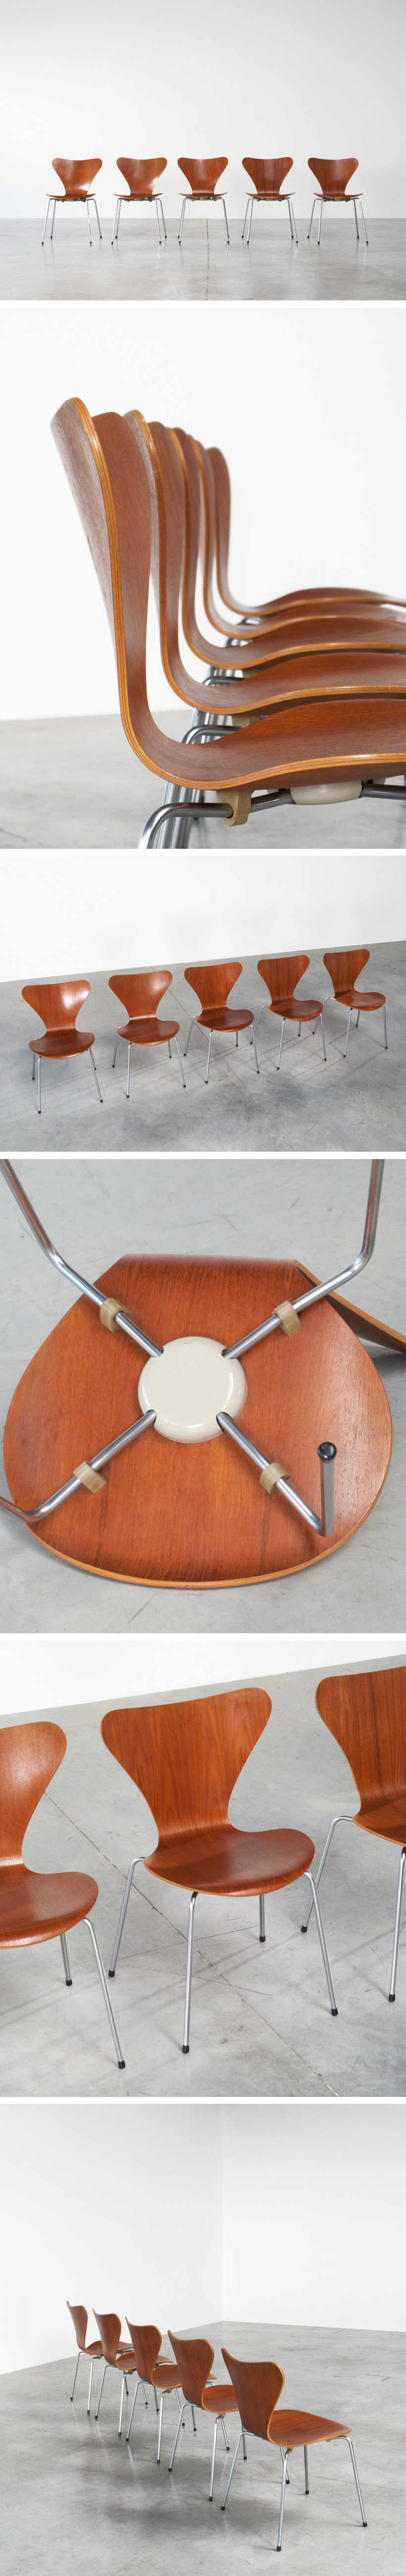 Arne Jacobsen 5 teak chairs 3107 Fritz Hansen 1972 Large